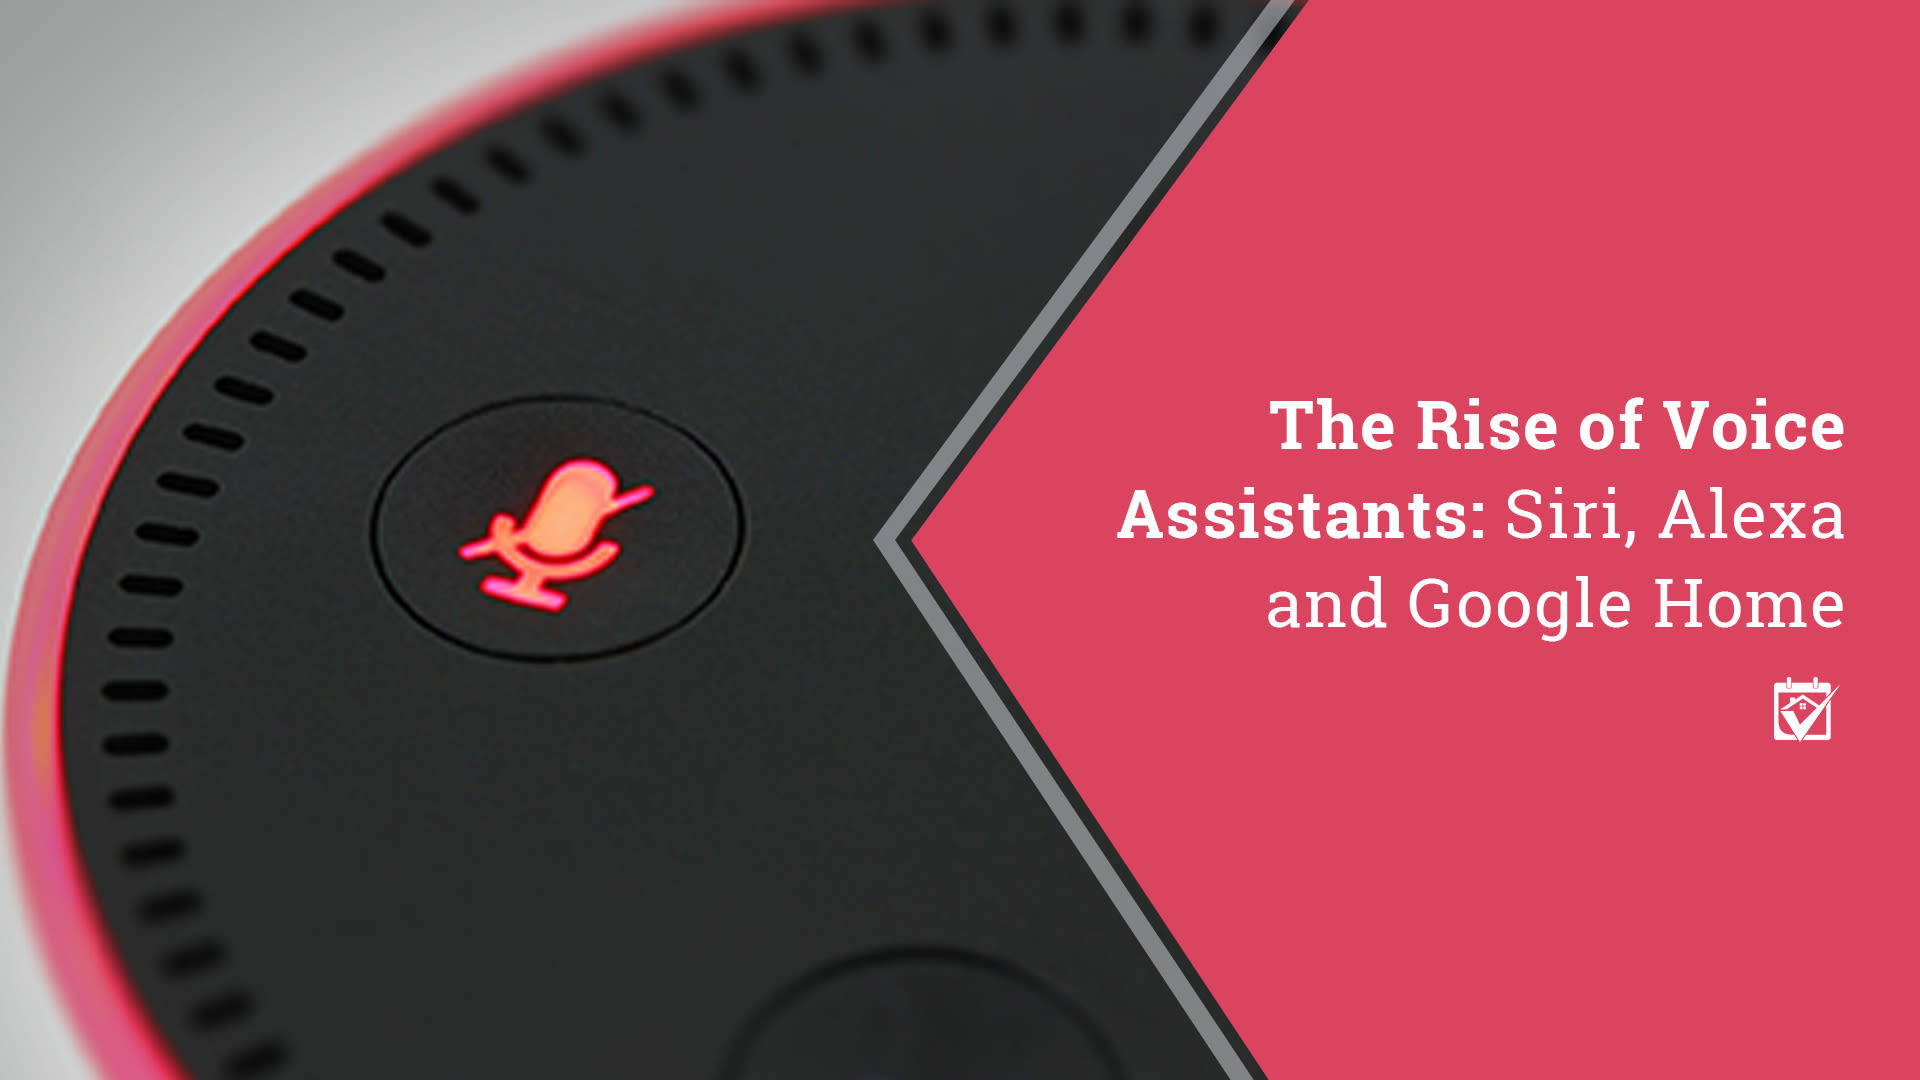 The Rise of Voice Assistants: Siri, Alexa and Google Assistant